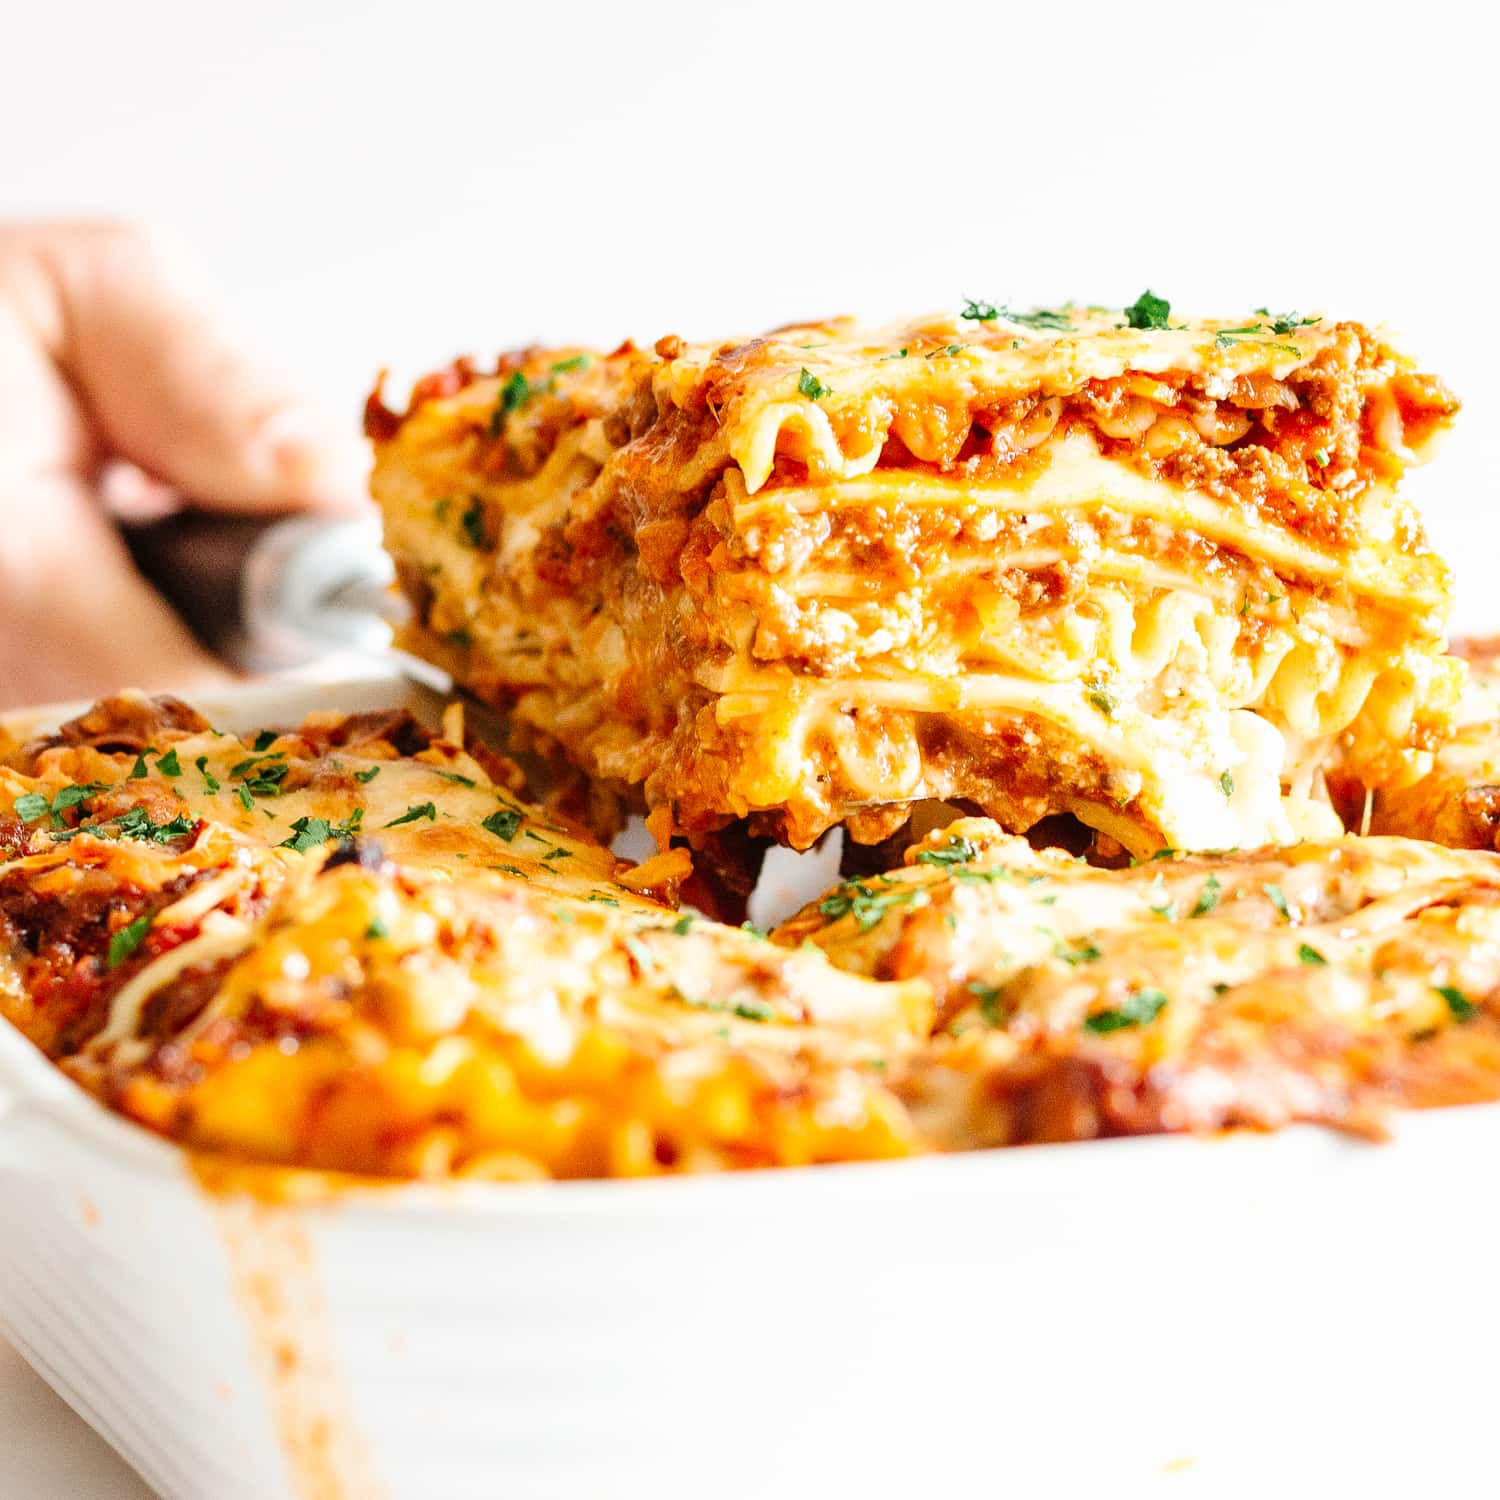 Slice of lasagna being lifted out of casserole dish.